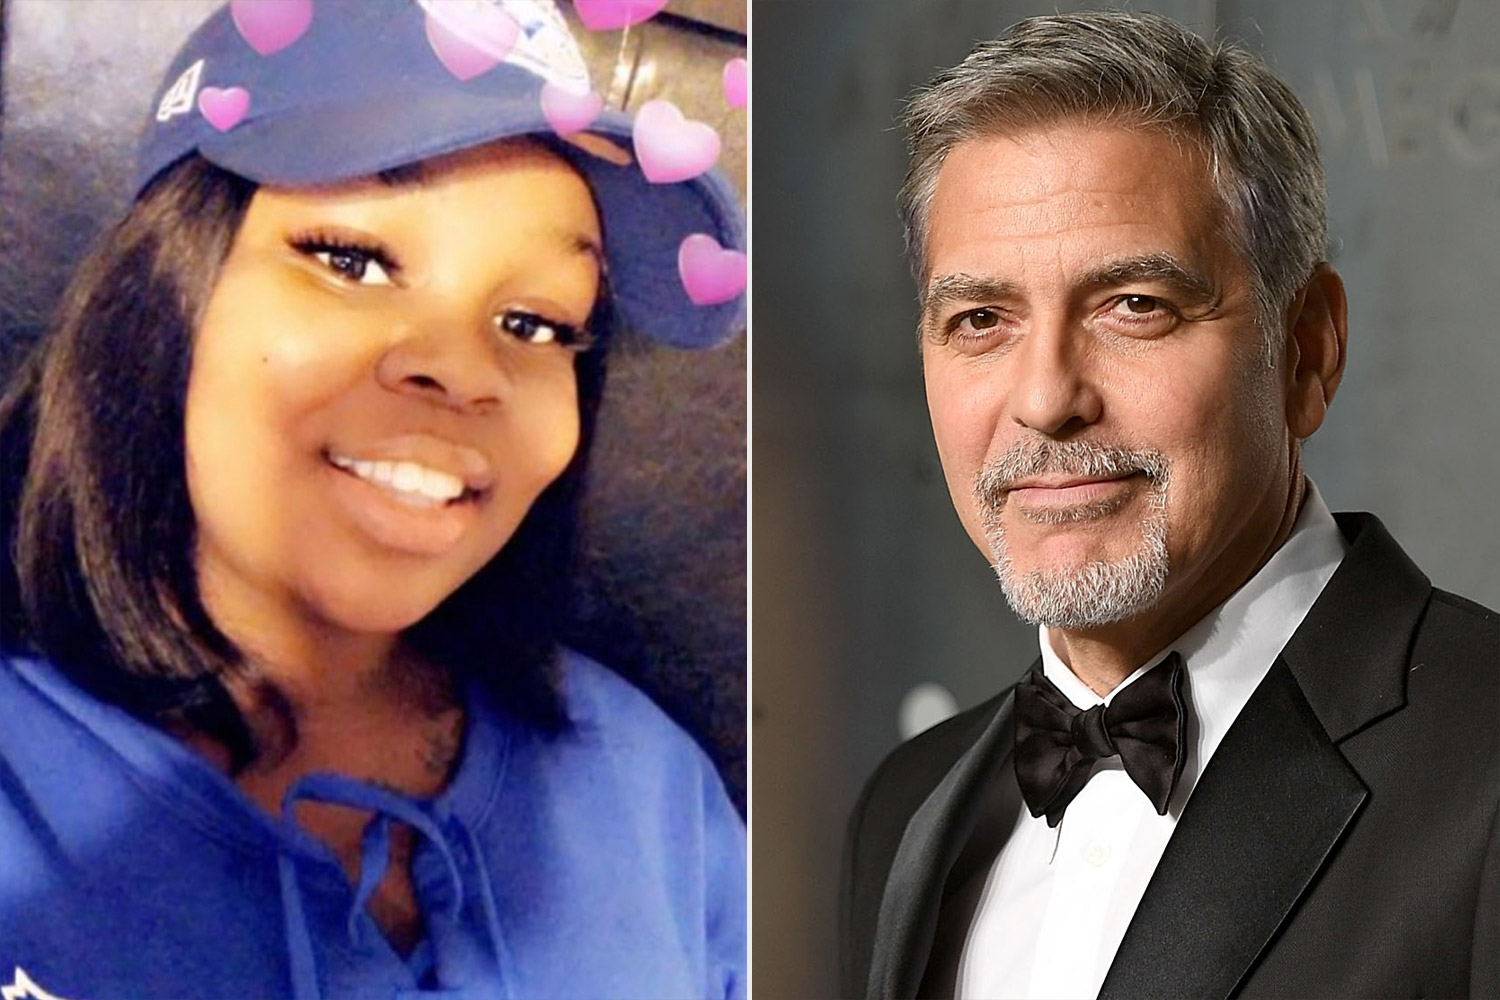 George Clooney Says He's 'Ashamed' of Breonna Taylor